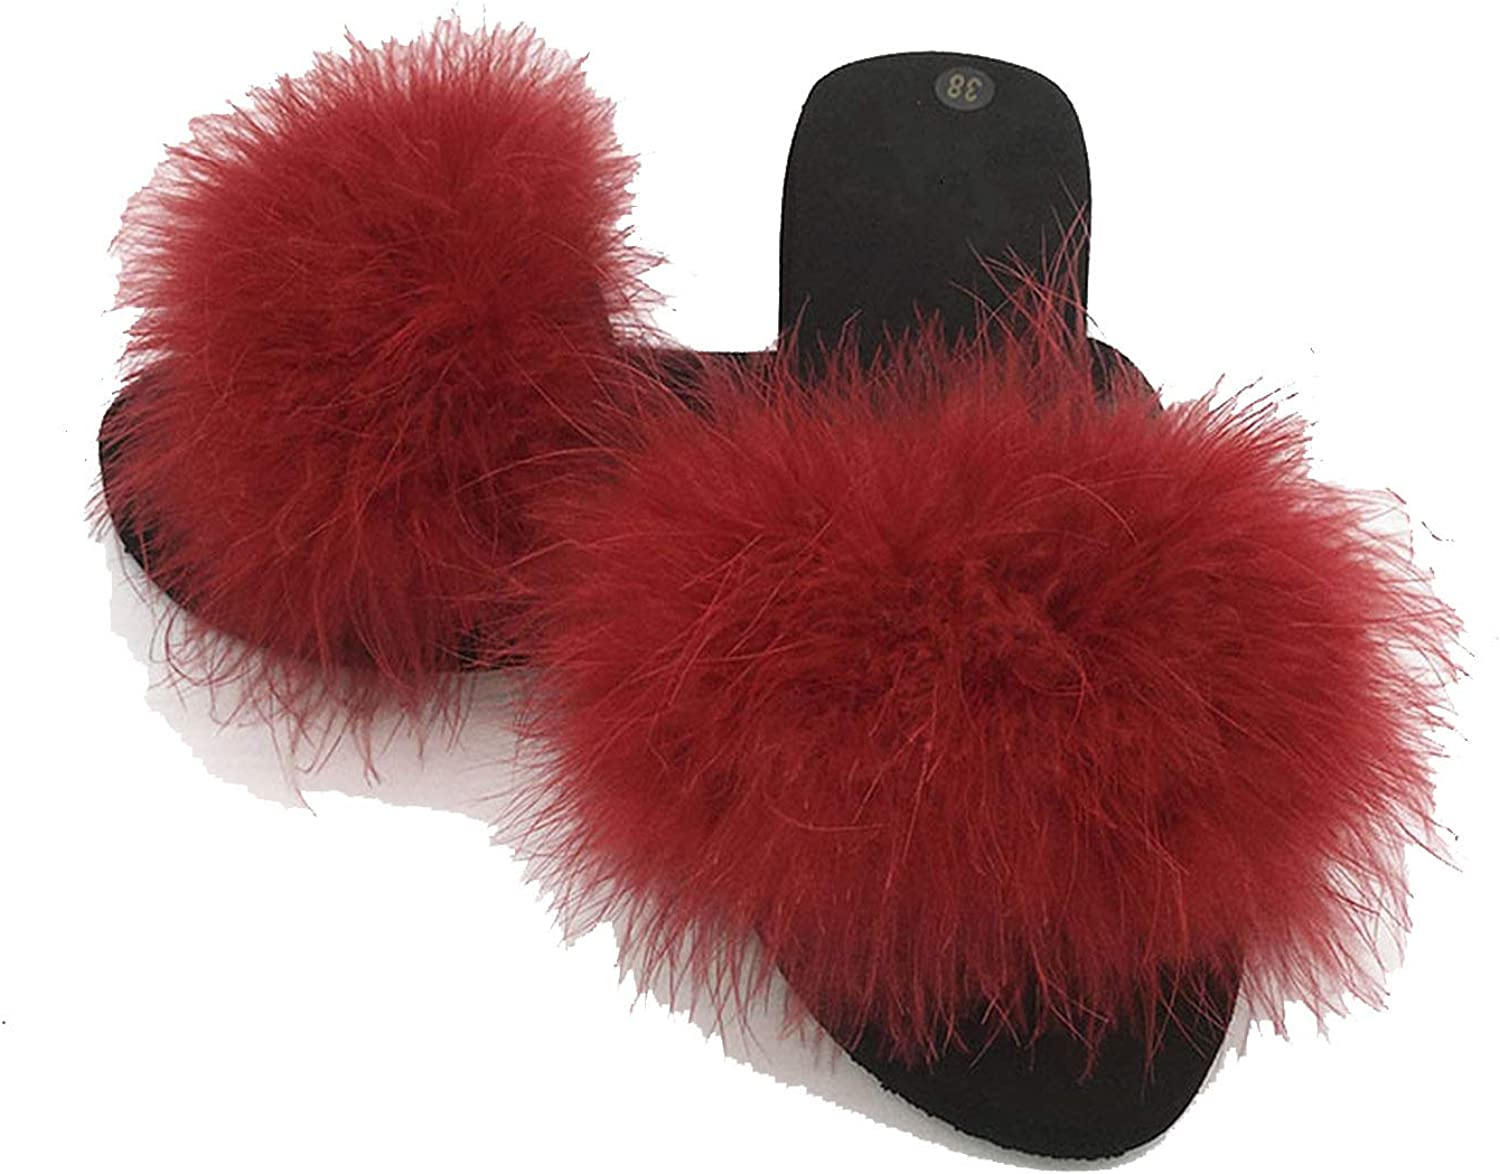 Slides Women Home Slippers Feathers Fluffy 44 Sweet Sandals Beach shoes Sliders Fl,